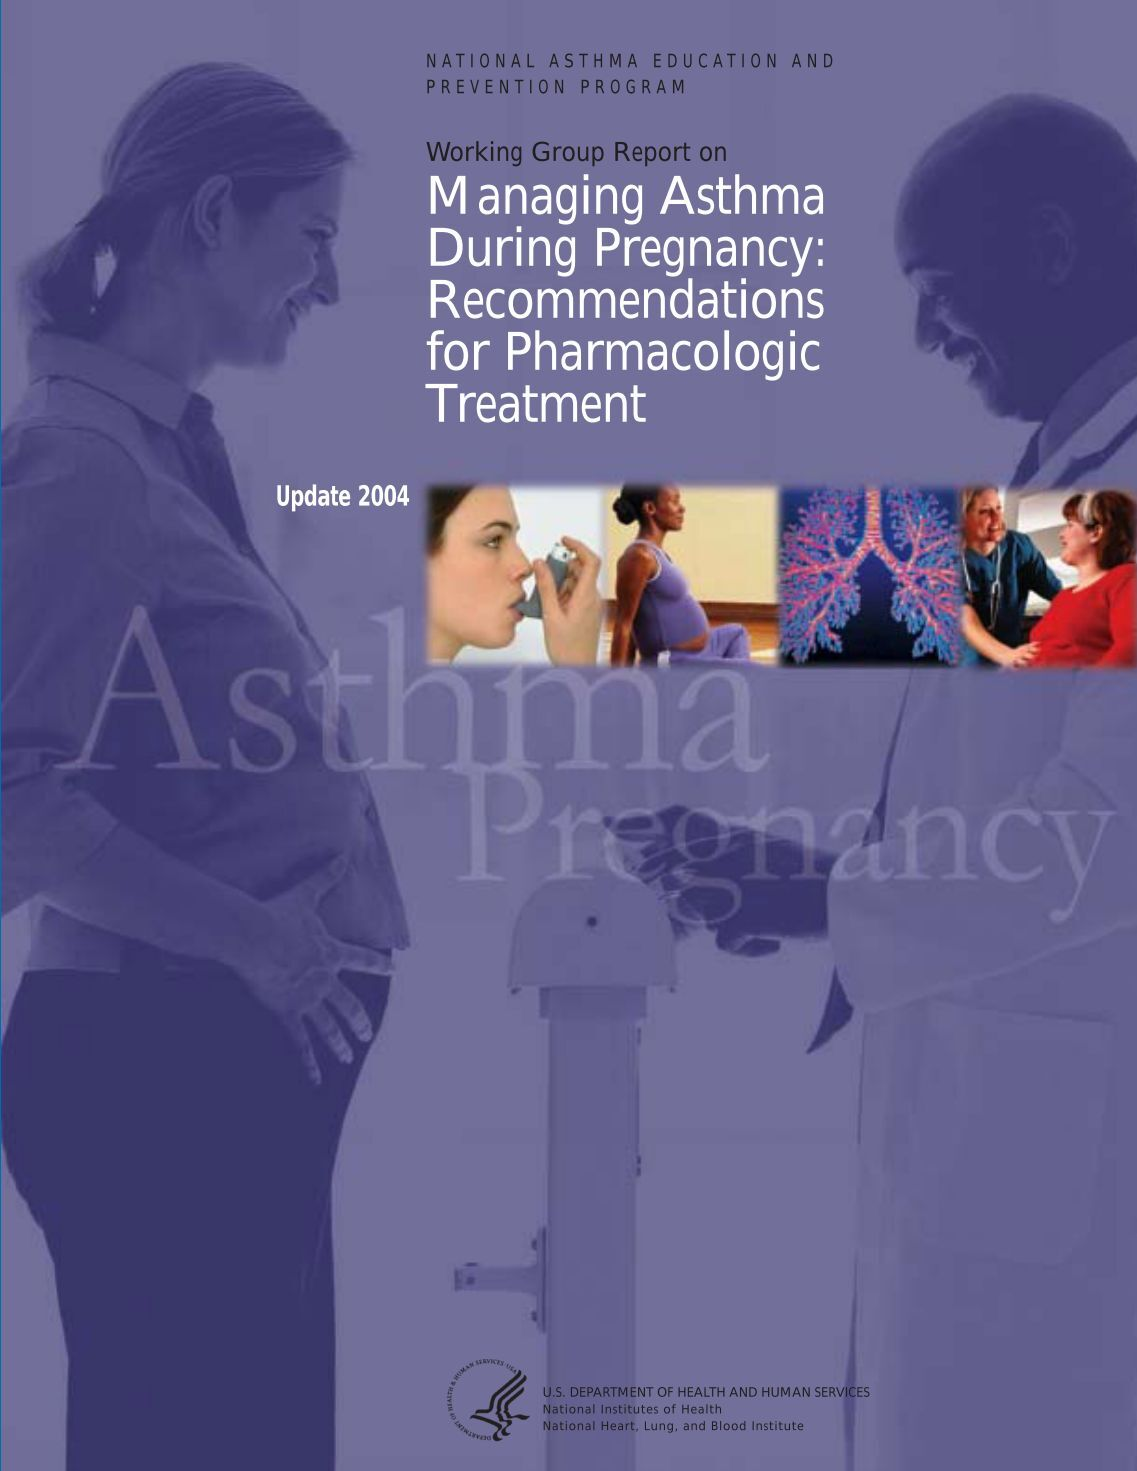 asthma during pregnancy essay About one third of pregnant women will have improved symptoms, one will be stable during pregnancy, and the remaining may suffer aggravation of asthma.